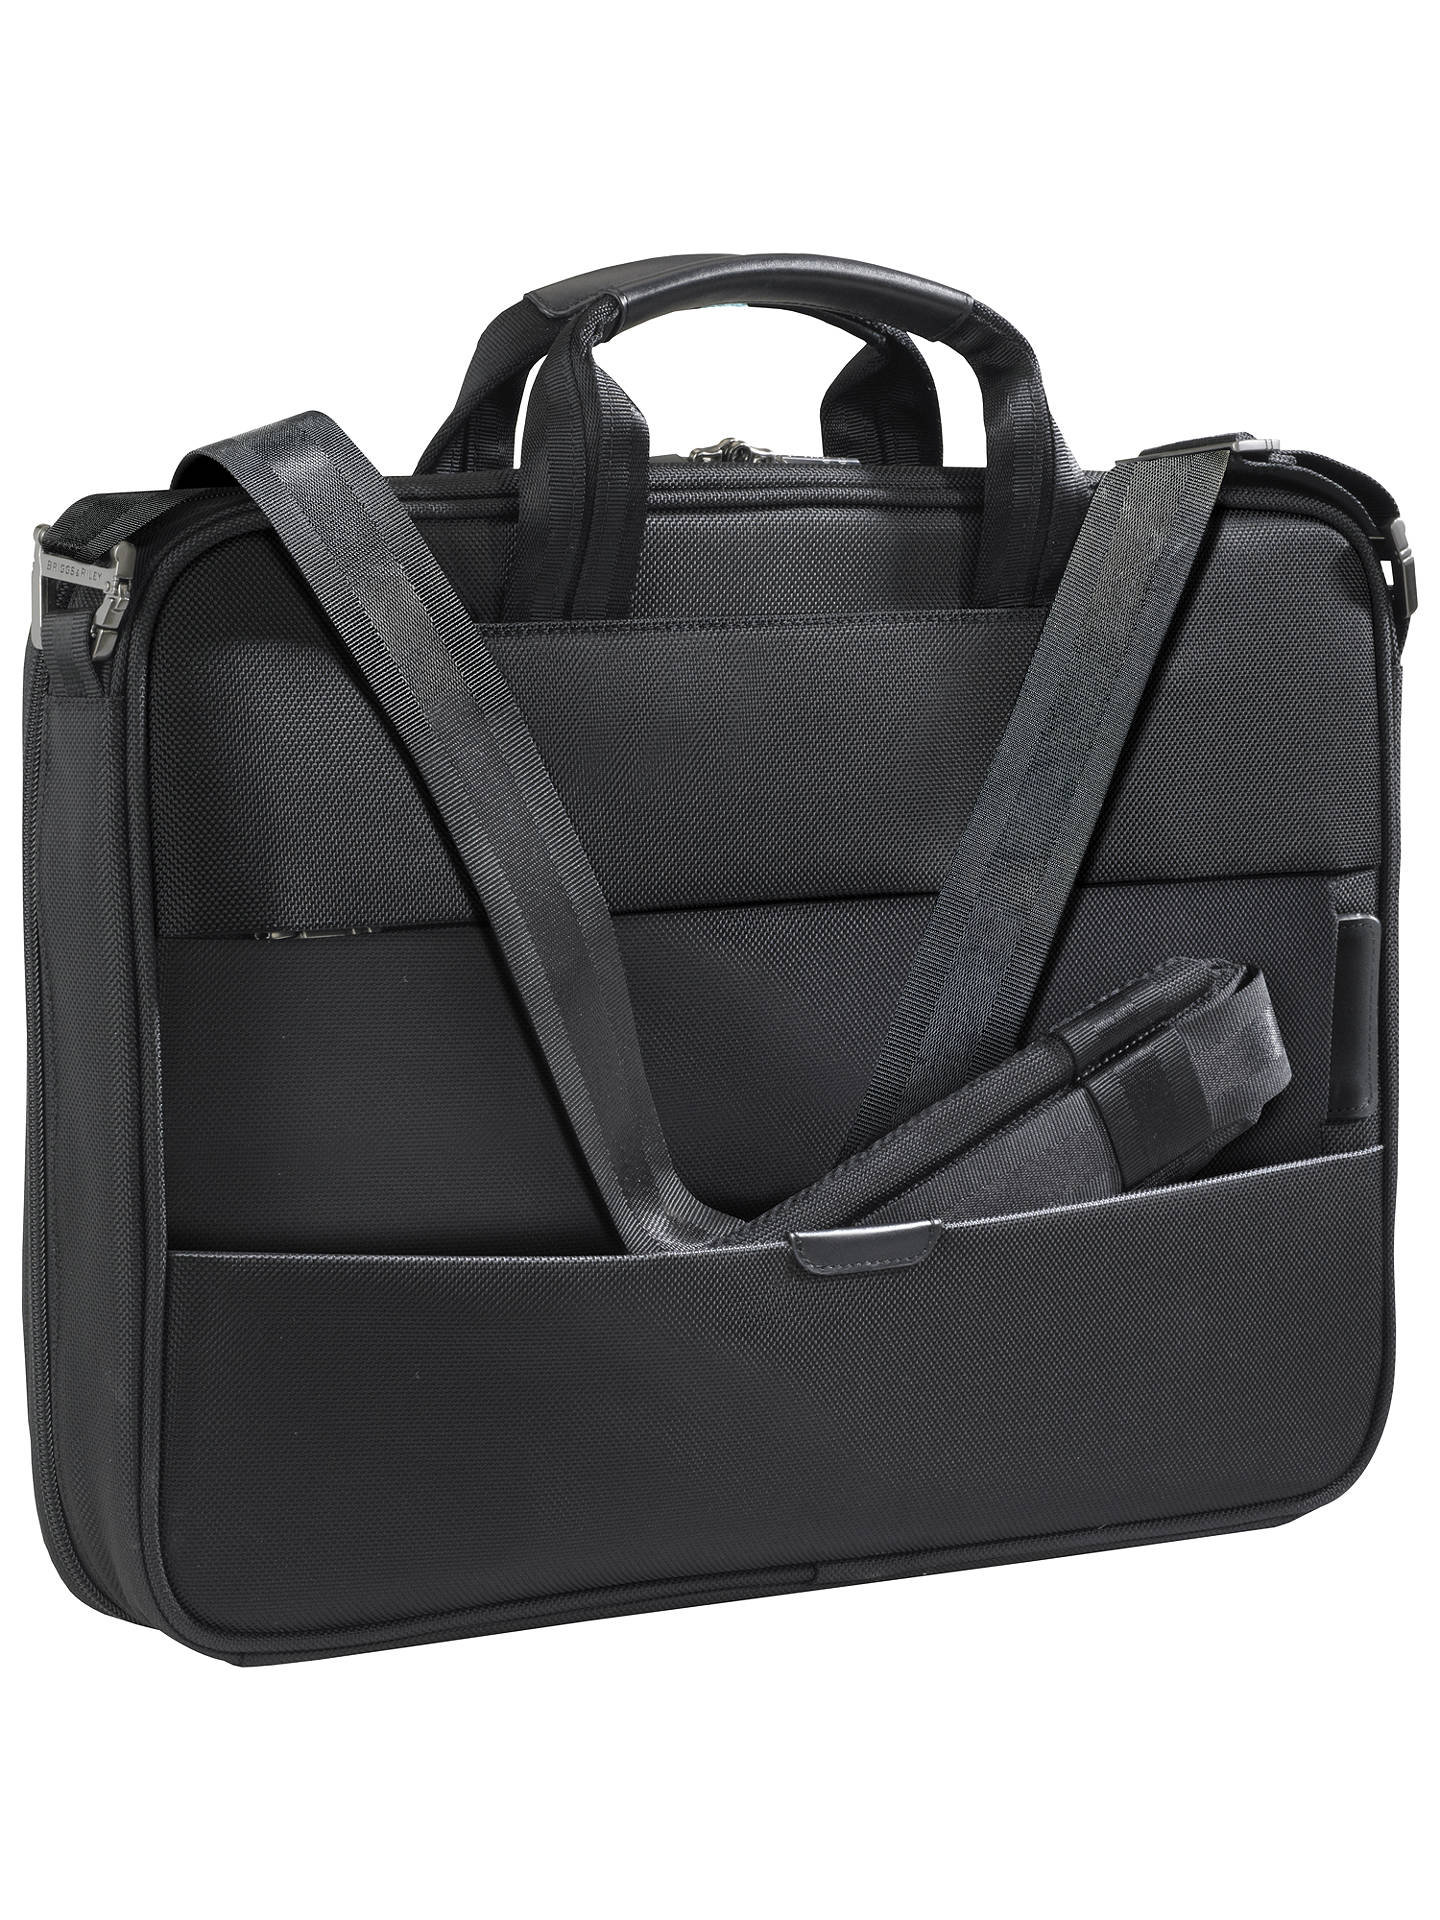 "BuyBriggs & Riley KB207X-4 Business 15.6"" Laptop Briefcase, Black Online at johnlewis.com"